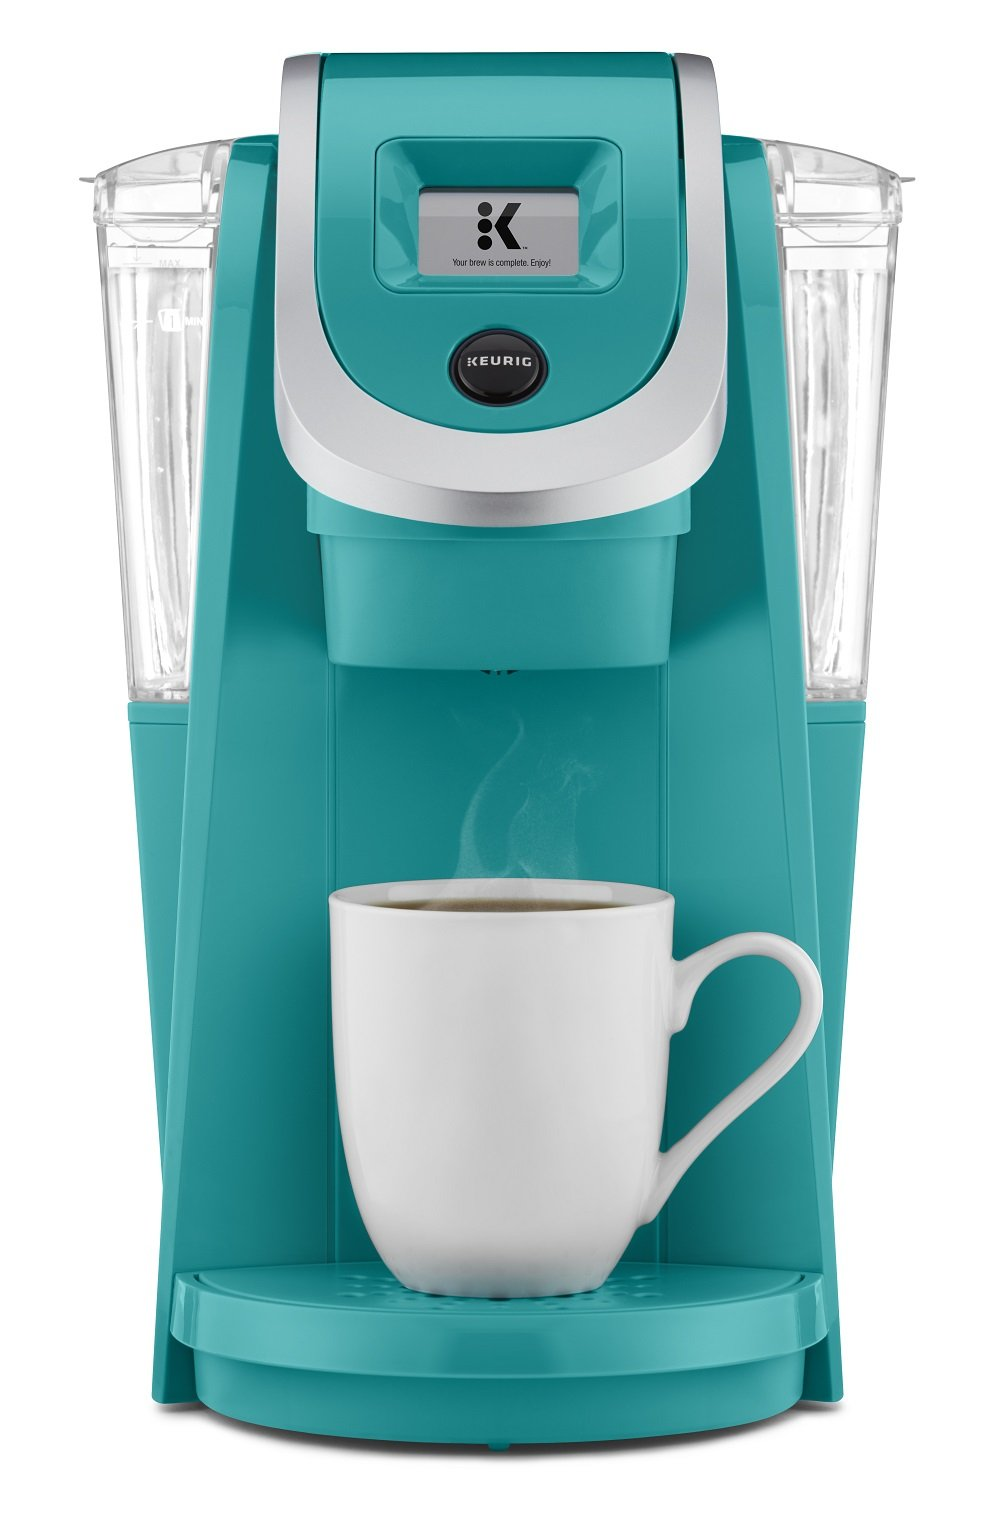 Keurig K250 Coffee Maker, Single Serve K-Cup Pod Coffee Brewer, With Strength Control, Turquoise by Keurig